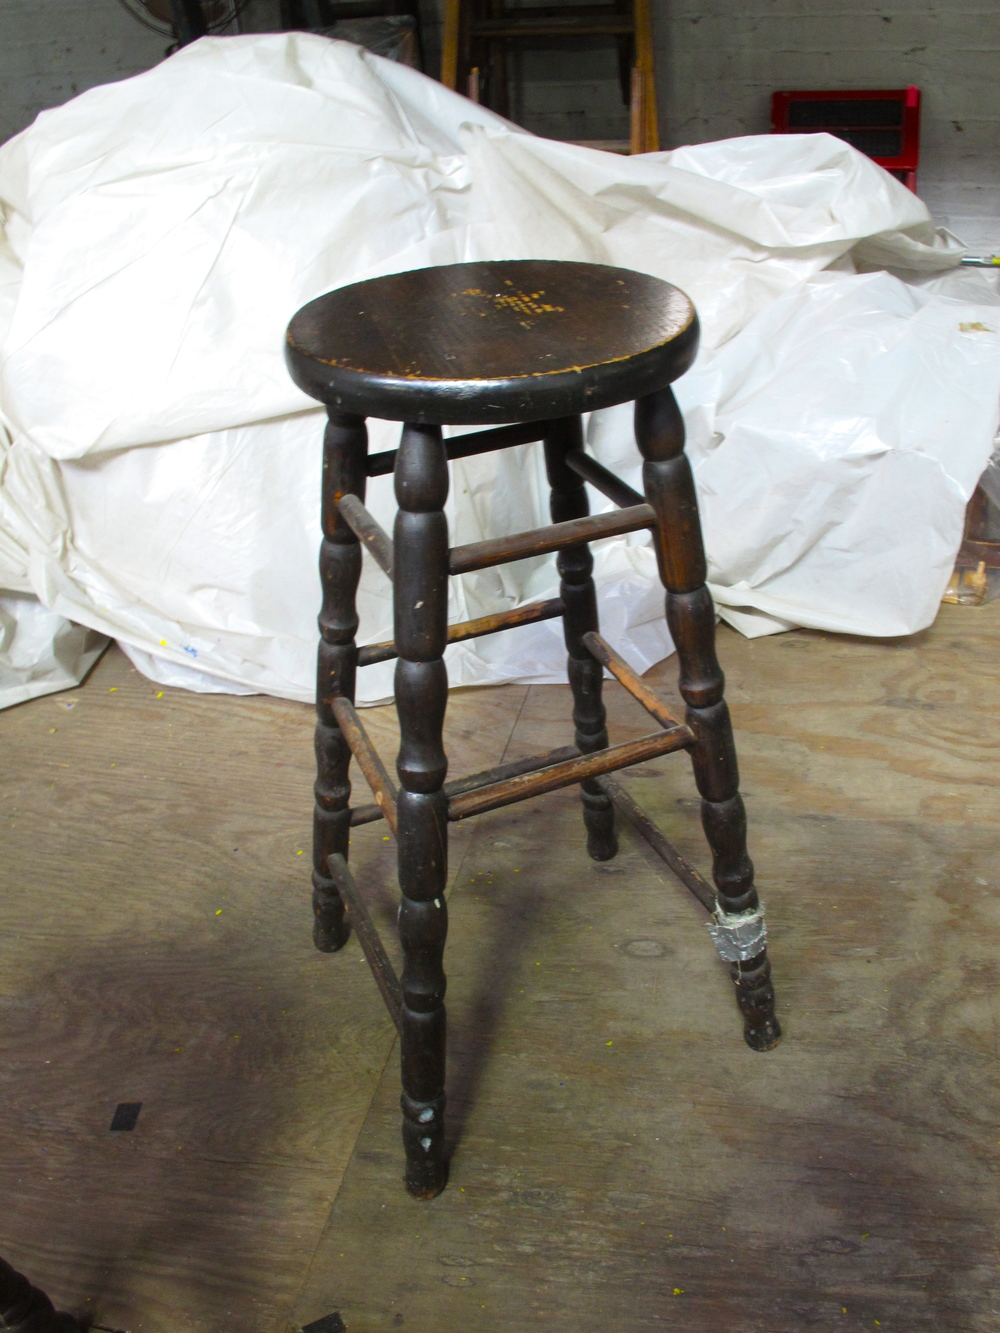 ark Wood Turned-Leg Stool $30